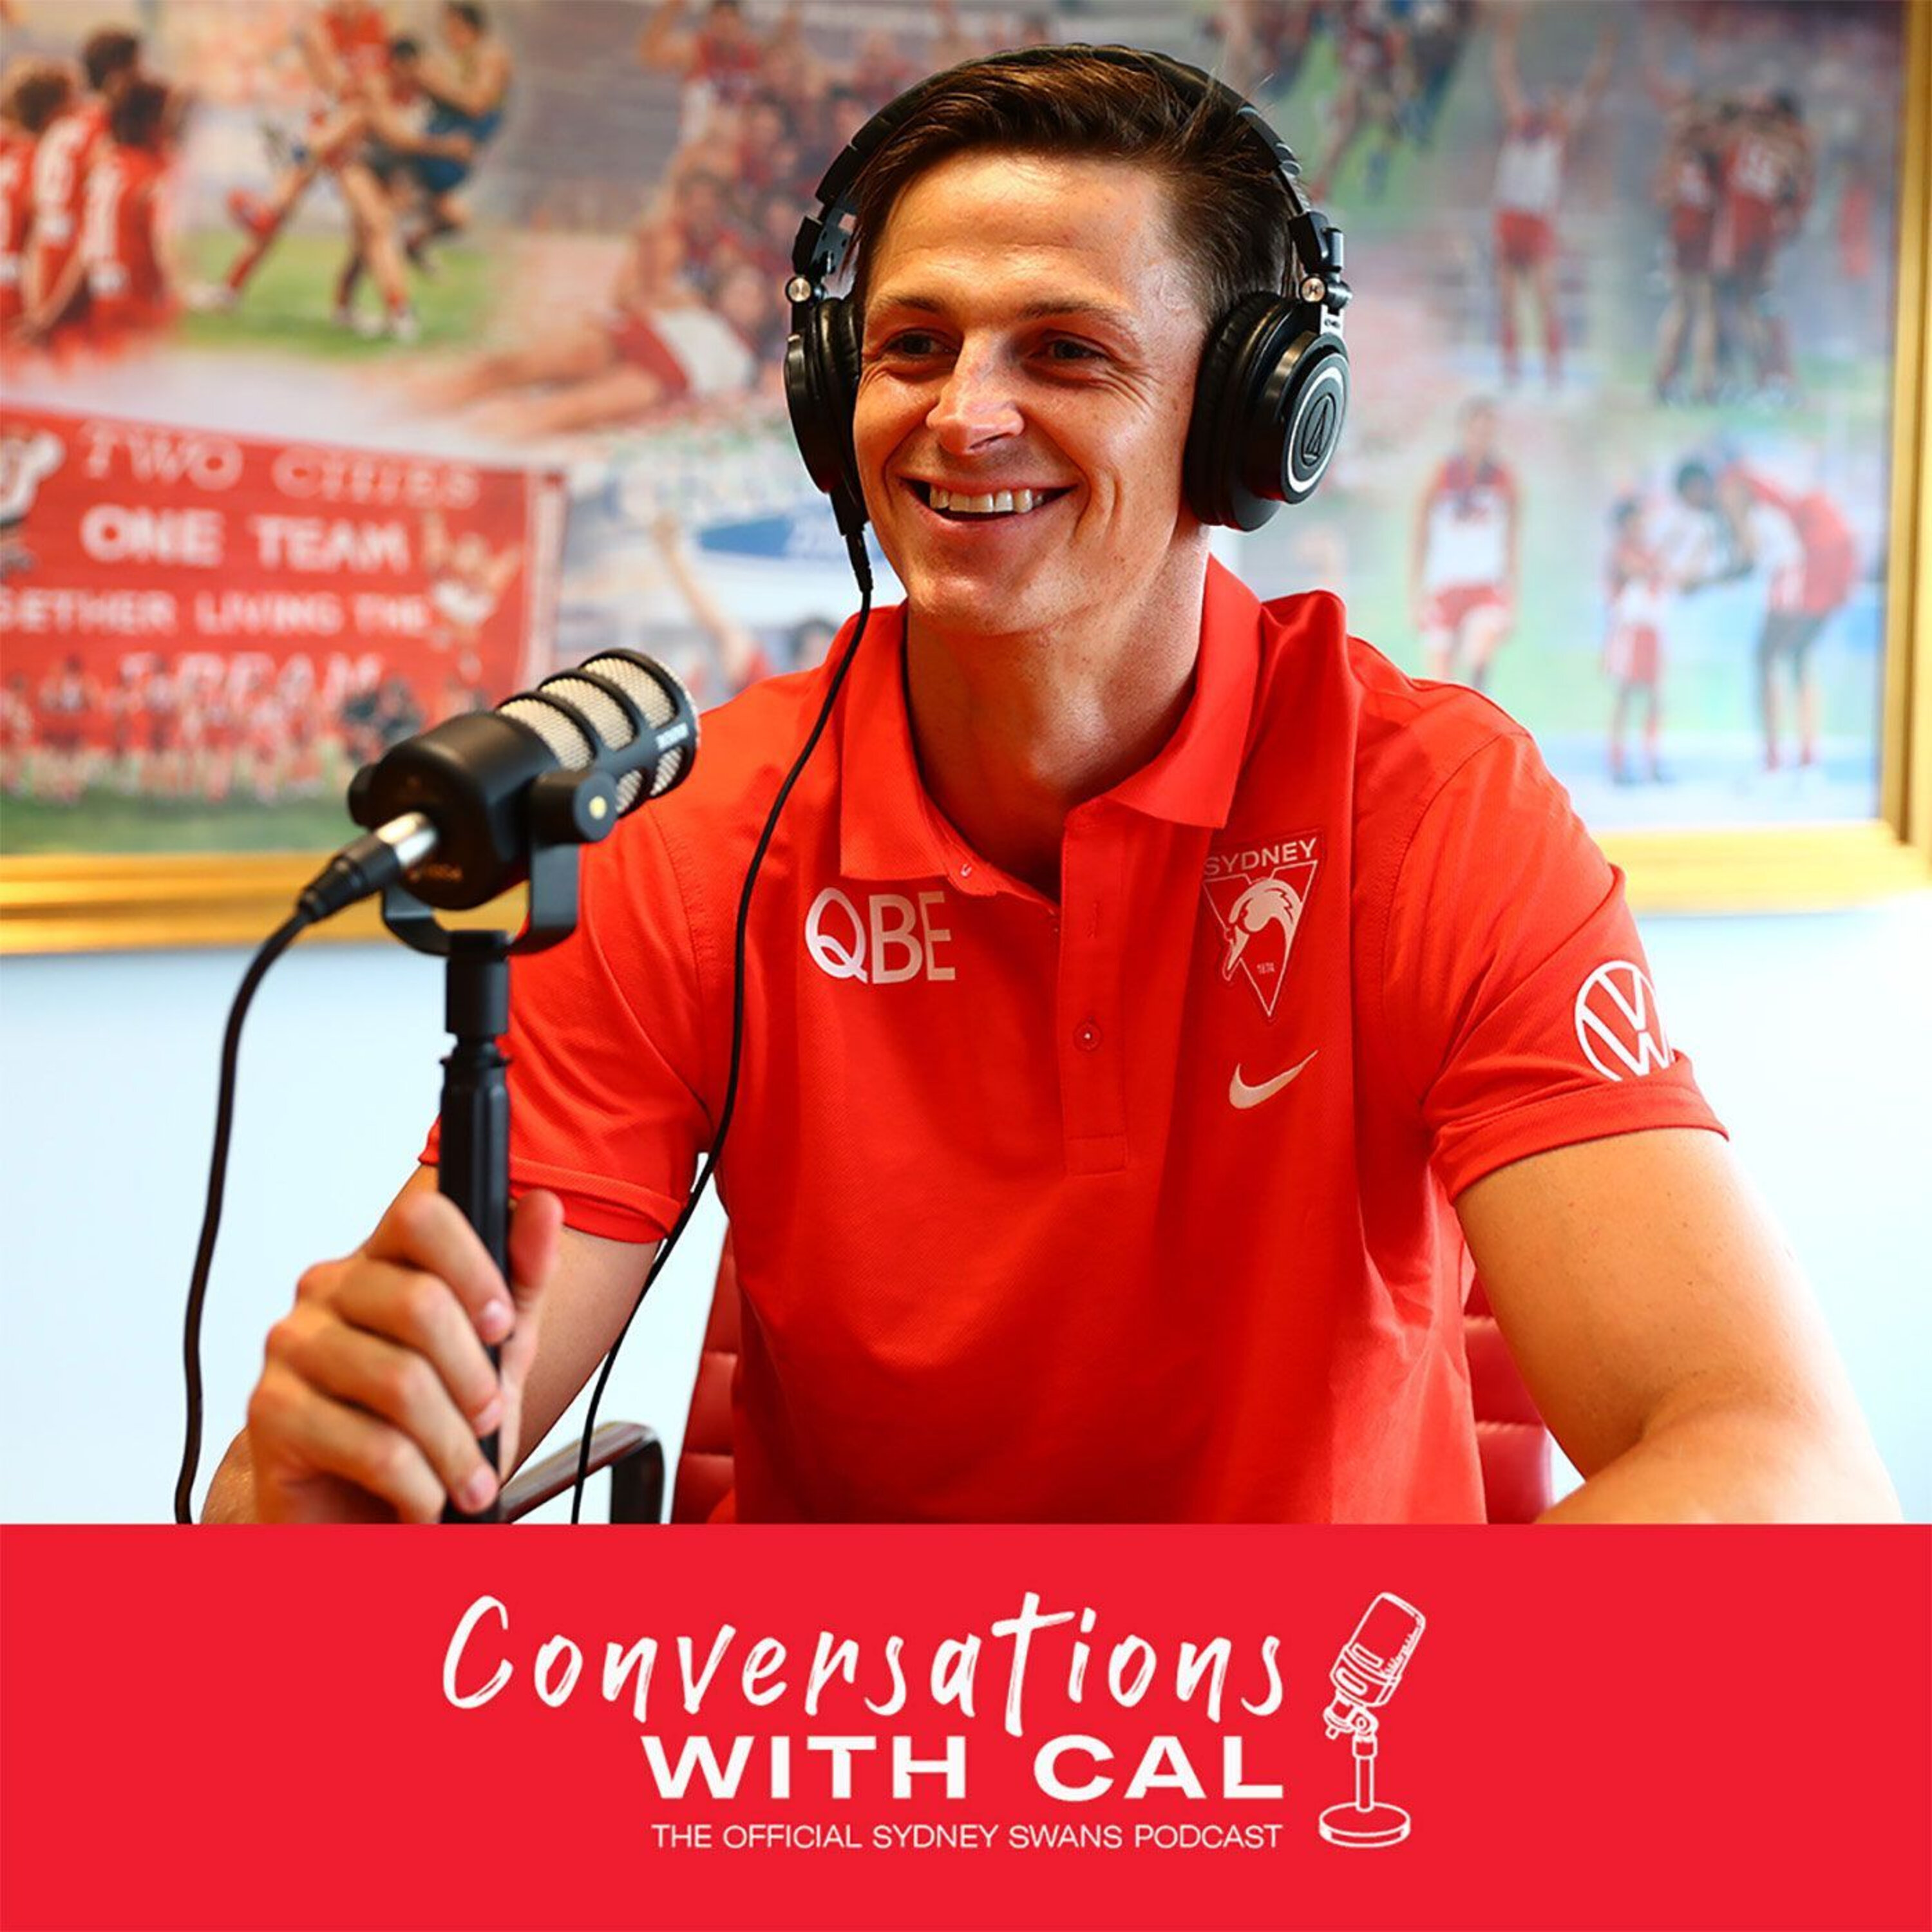 Conversations with Cal - On the Crouch